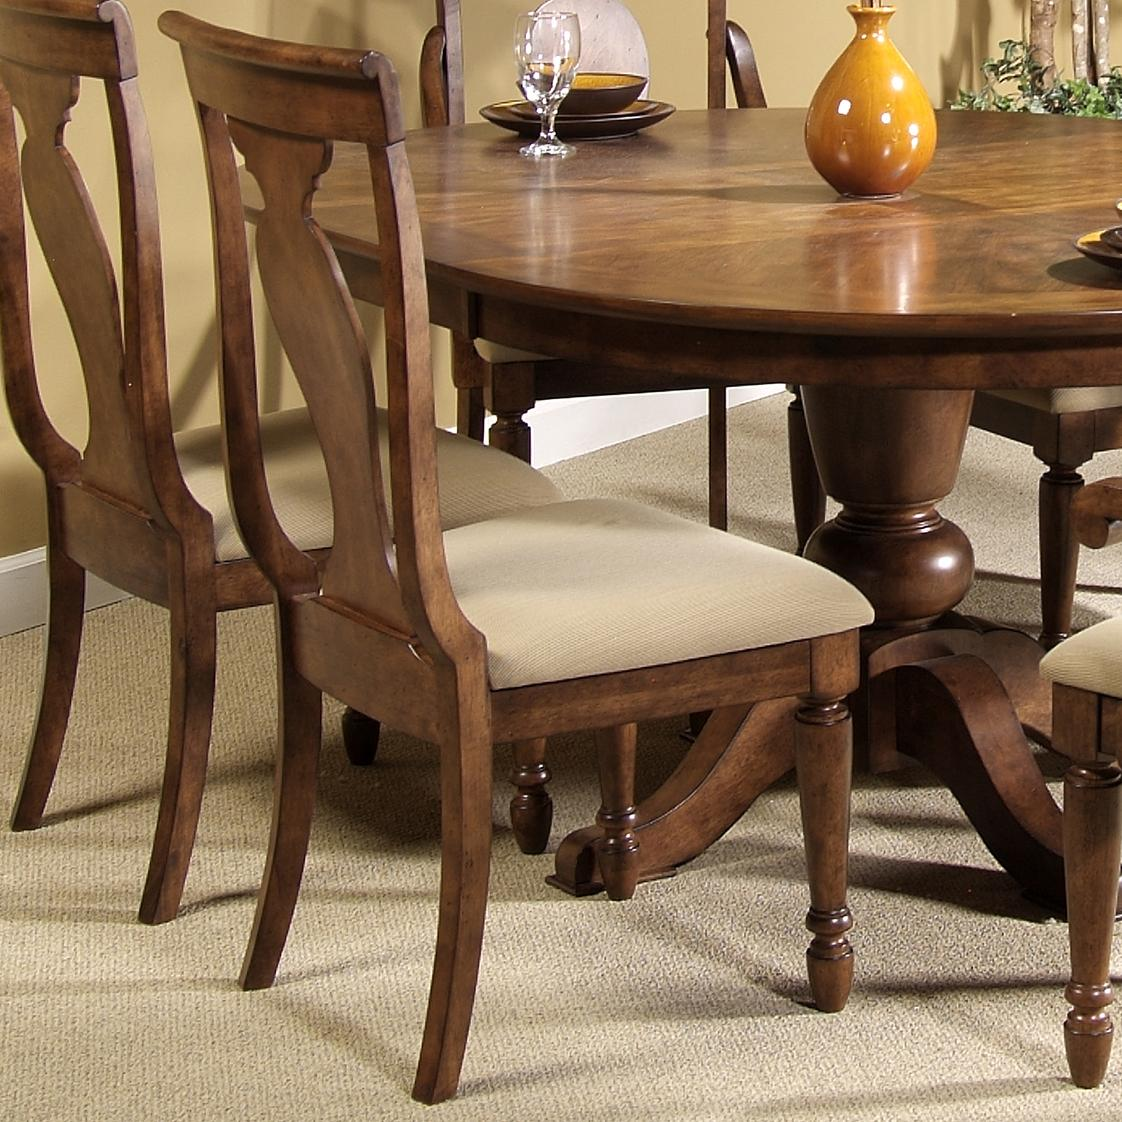 Rustic Traditions Splat Back Side Chair by Liberty Furniture at Lapeer Furniture & Mattress Center